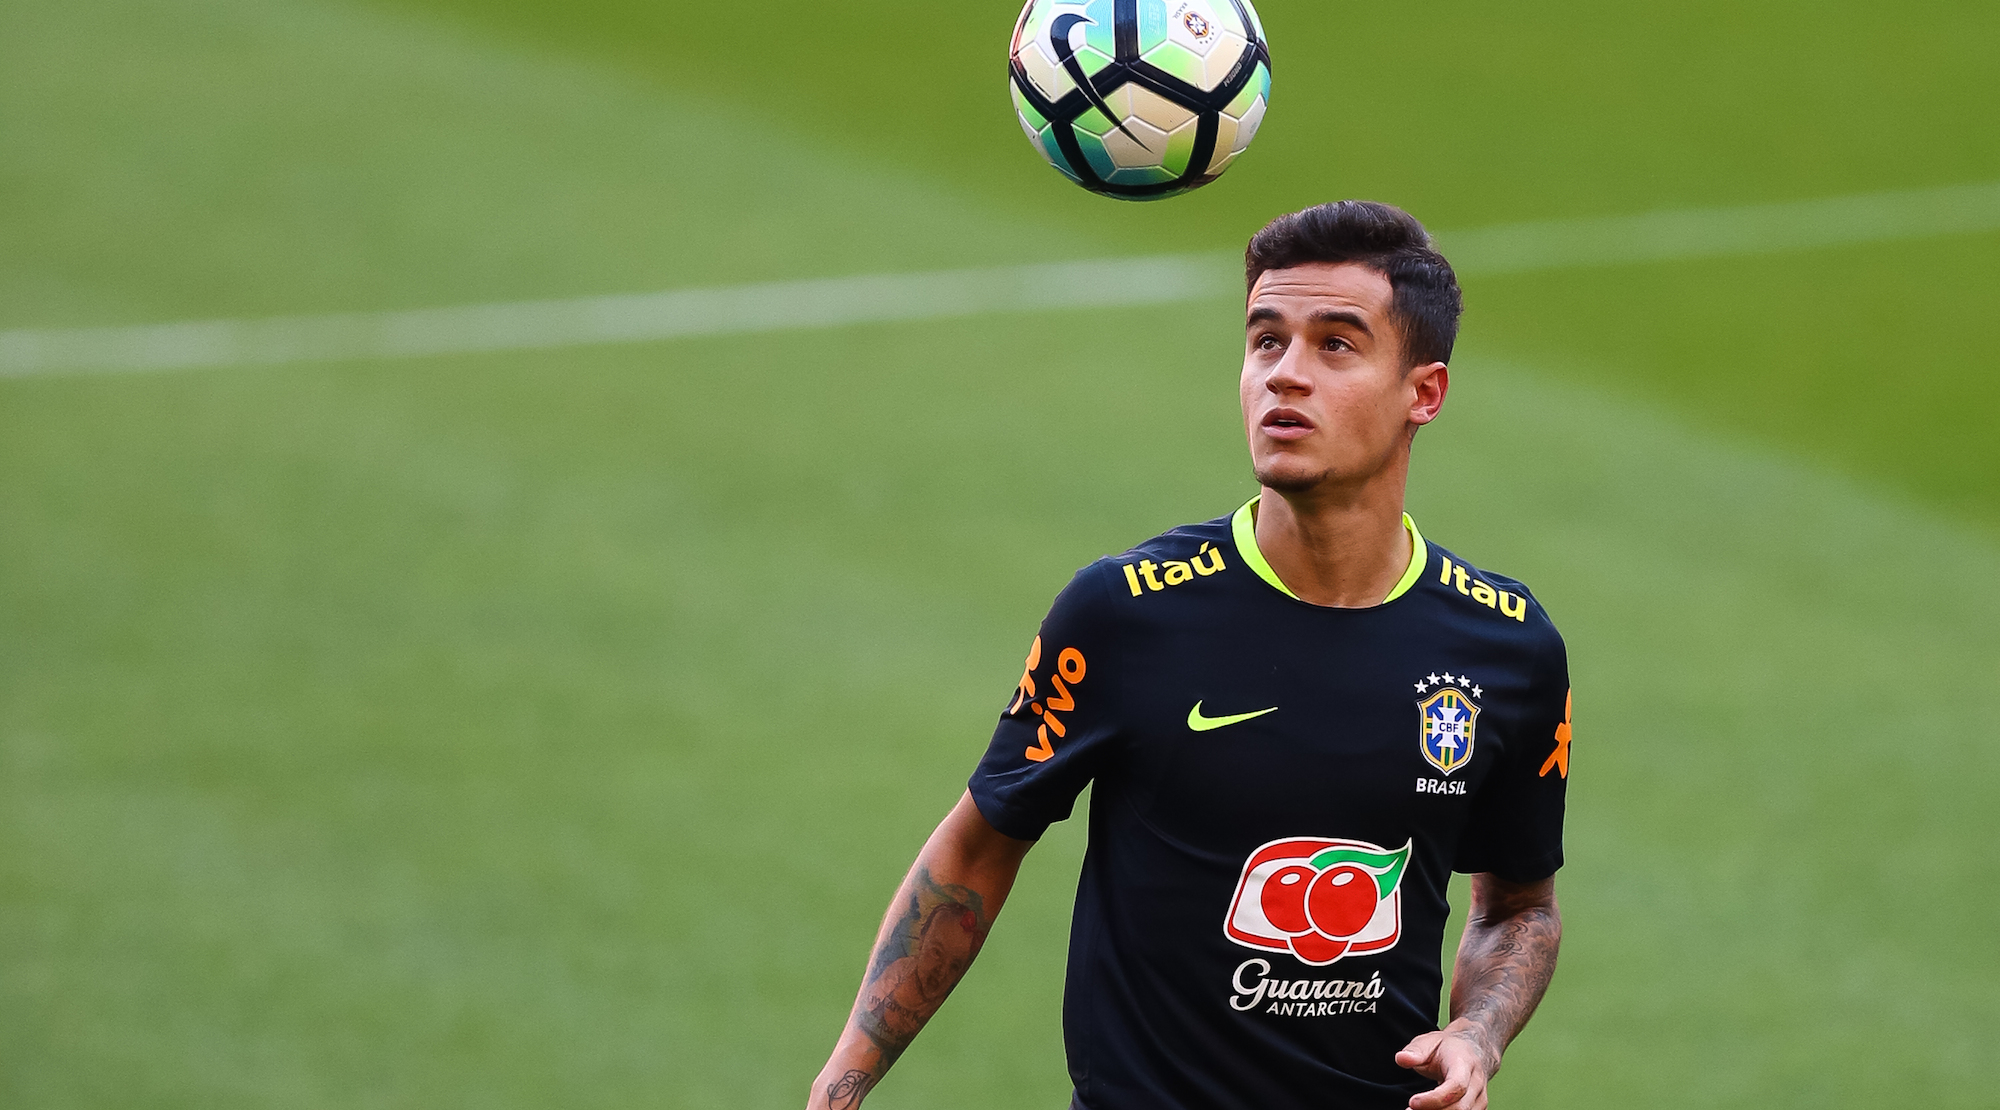 PORTO ALEGRE, BRAZIL - AUGUST 29: Philippe Coutinho takes part in a training session at the Beira Rio Stadium on August 29, 2017 in Porto Alegre, Brazil, ahead of their 2018 FIFA World Cup qualifier match against Ecuador on August 31. (Photo by Buda Mendes/Getty Images)